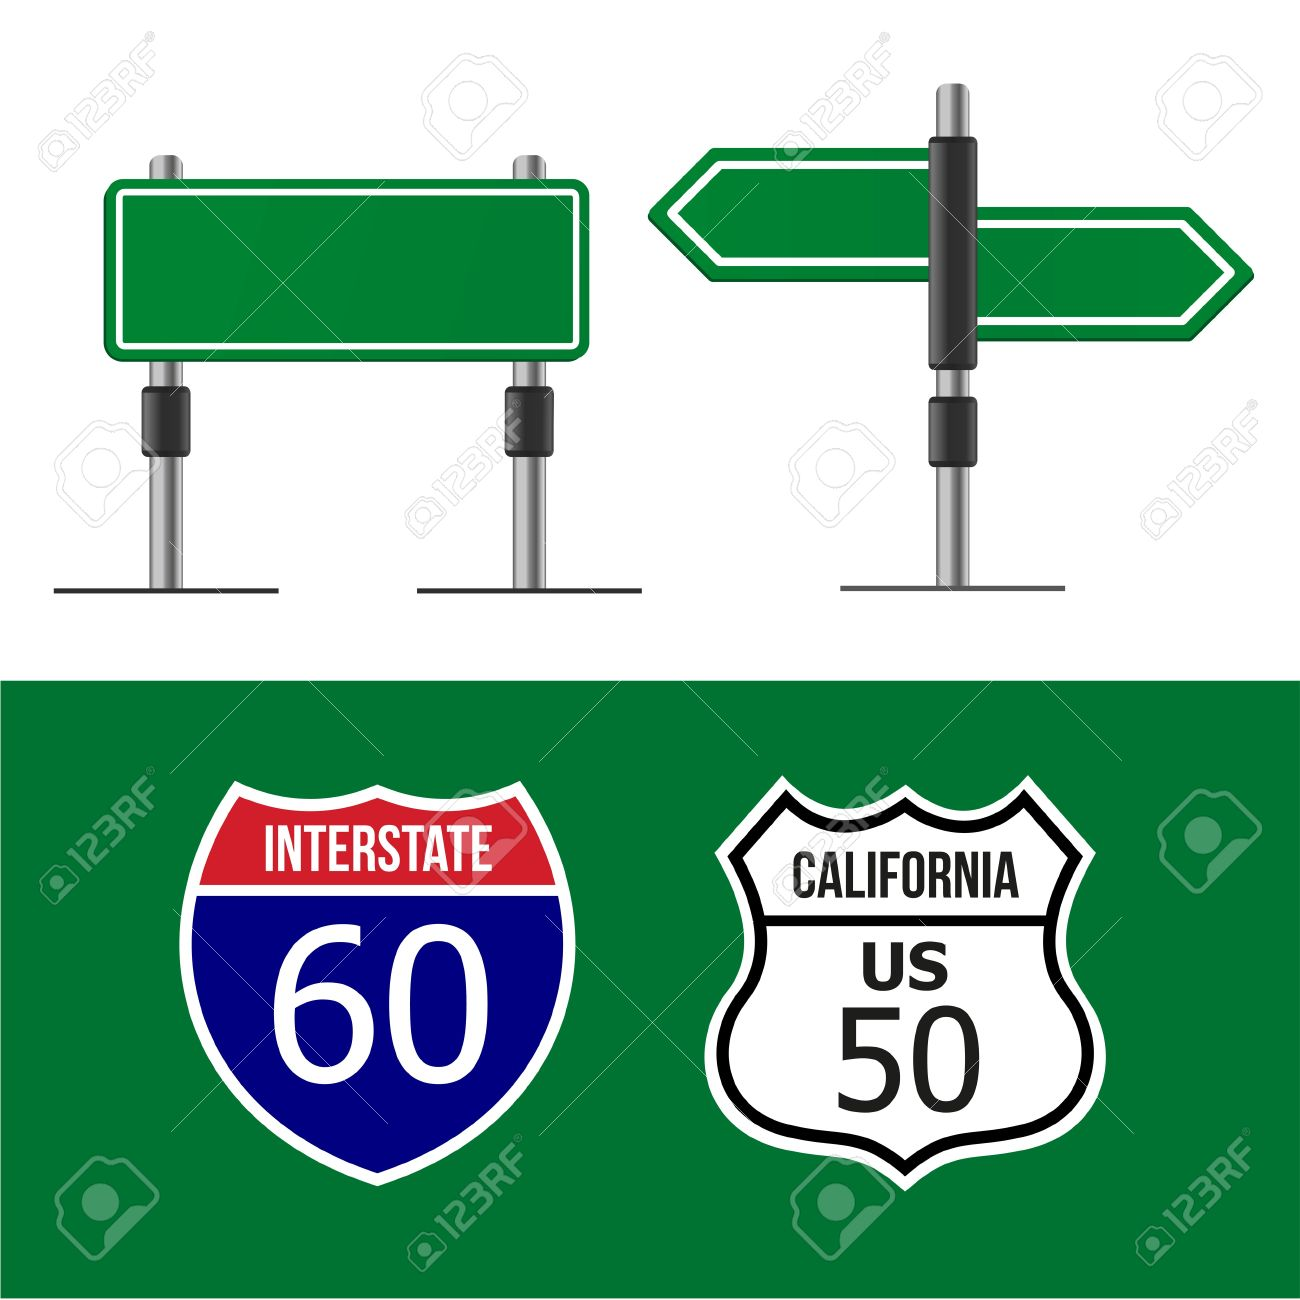 Modern road sign design template stock vector 21384149